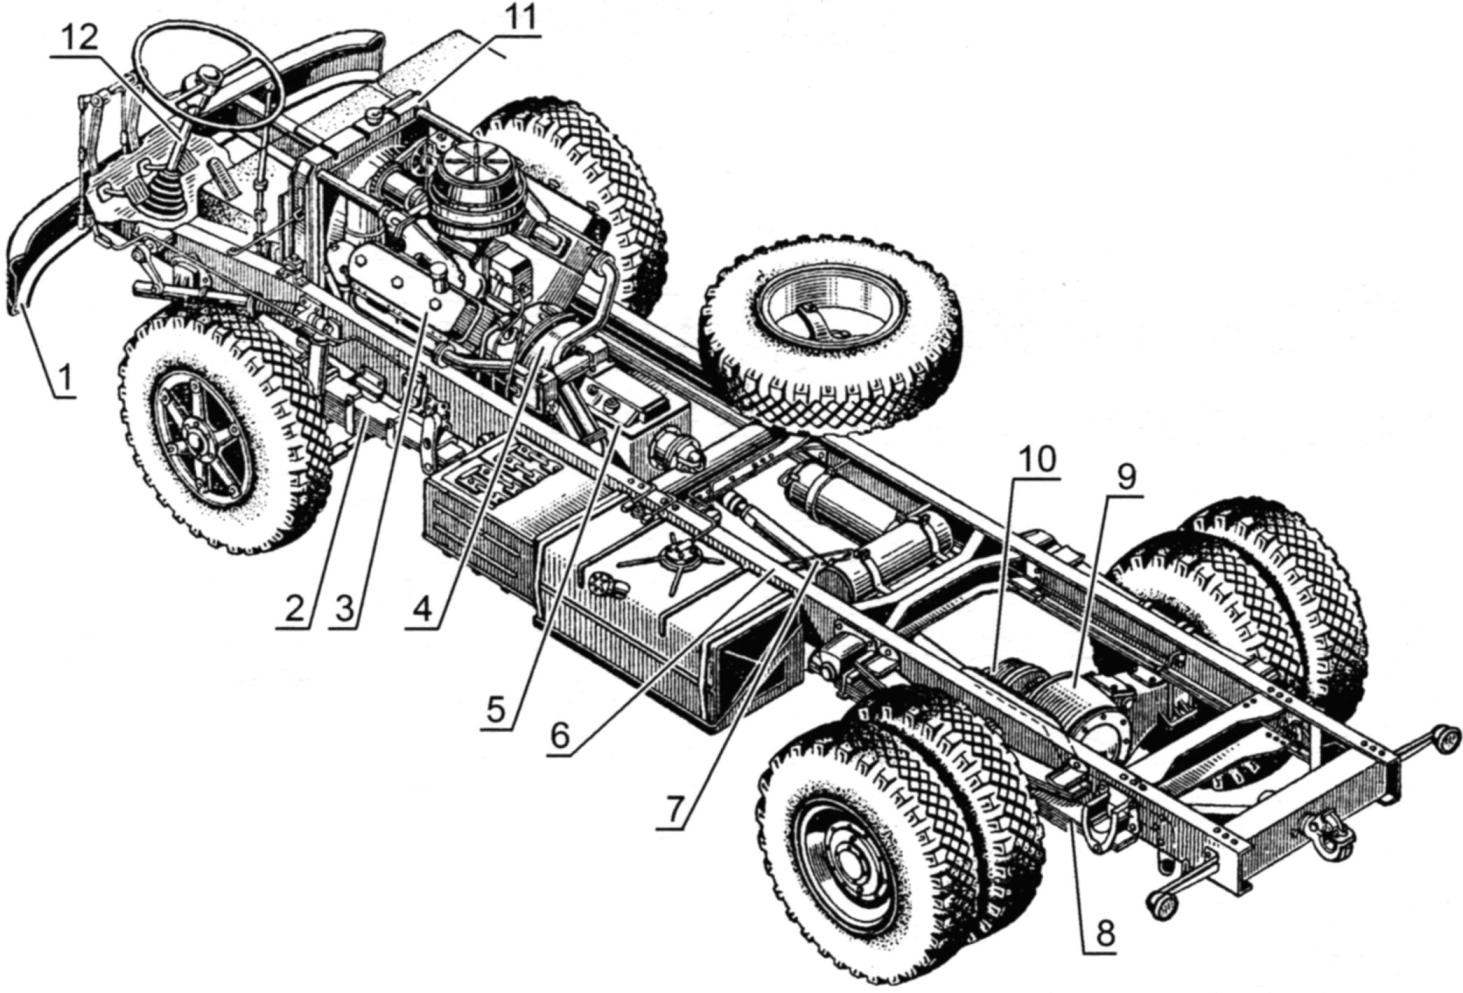 The layout of the chassis of MAZ-500